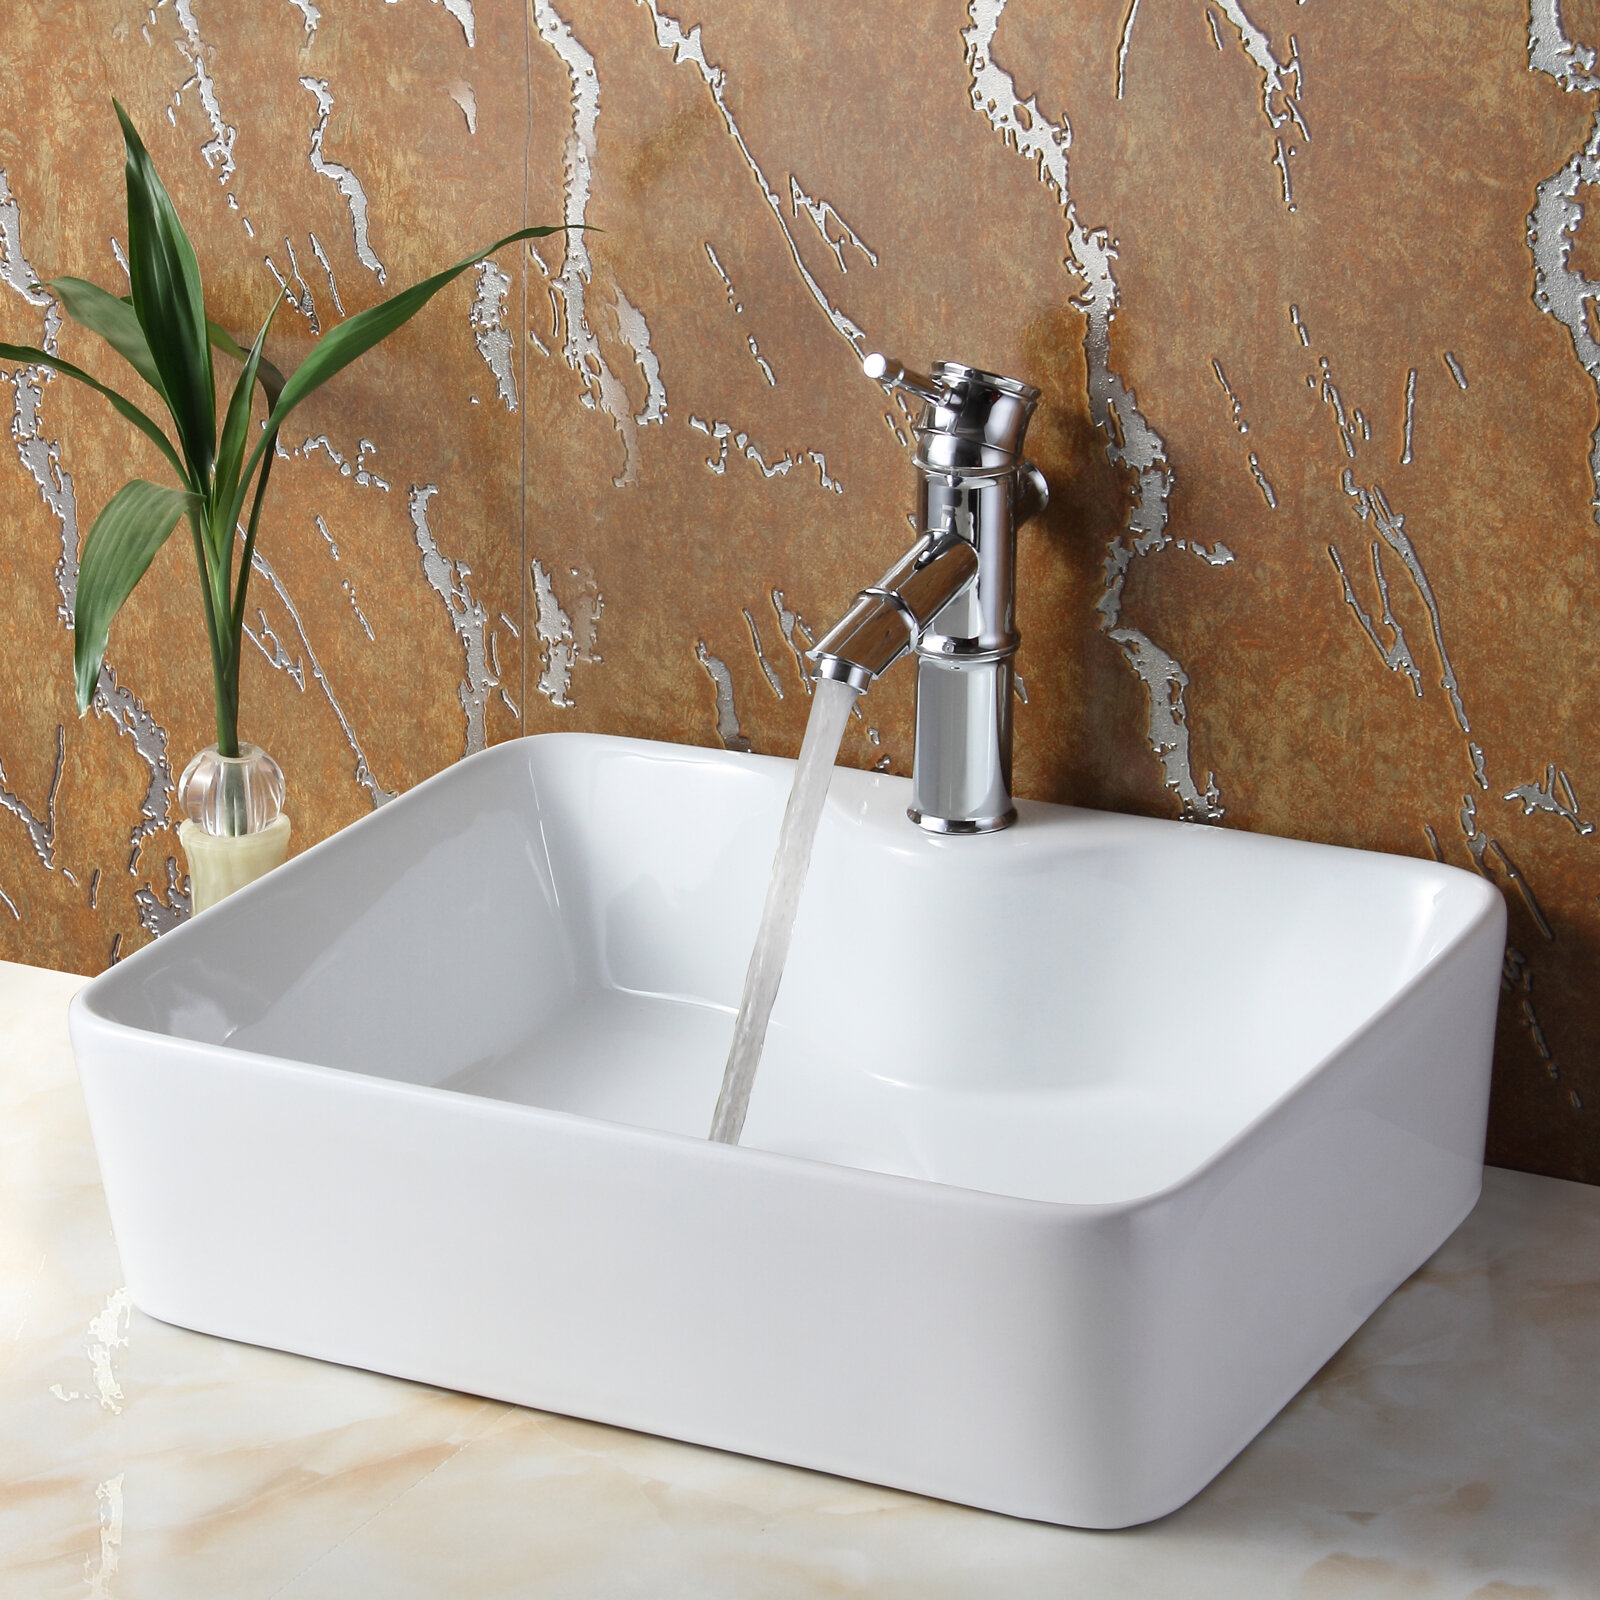 Elite Ceramic Rectangular Vessel Bathroom Sink & Reviews | Wayfair